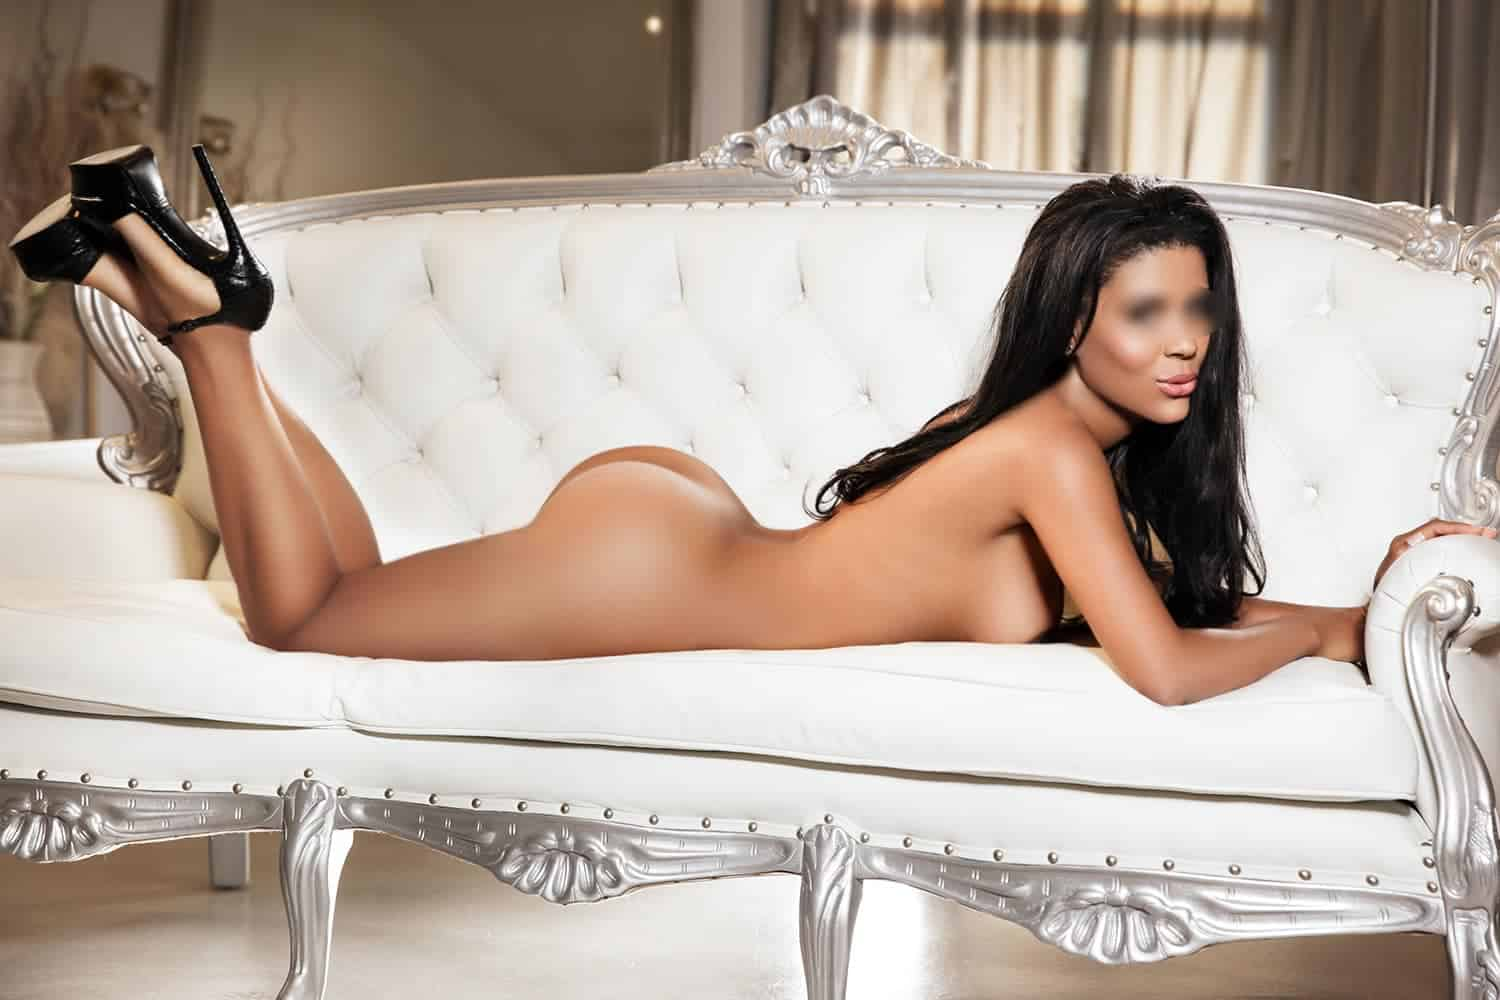 Brazilian beauty Janet, Mayfair Escort